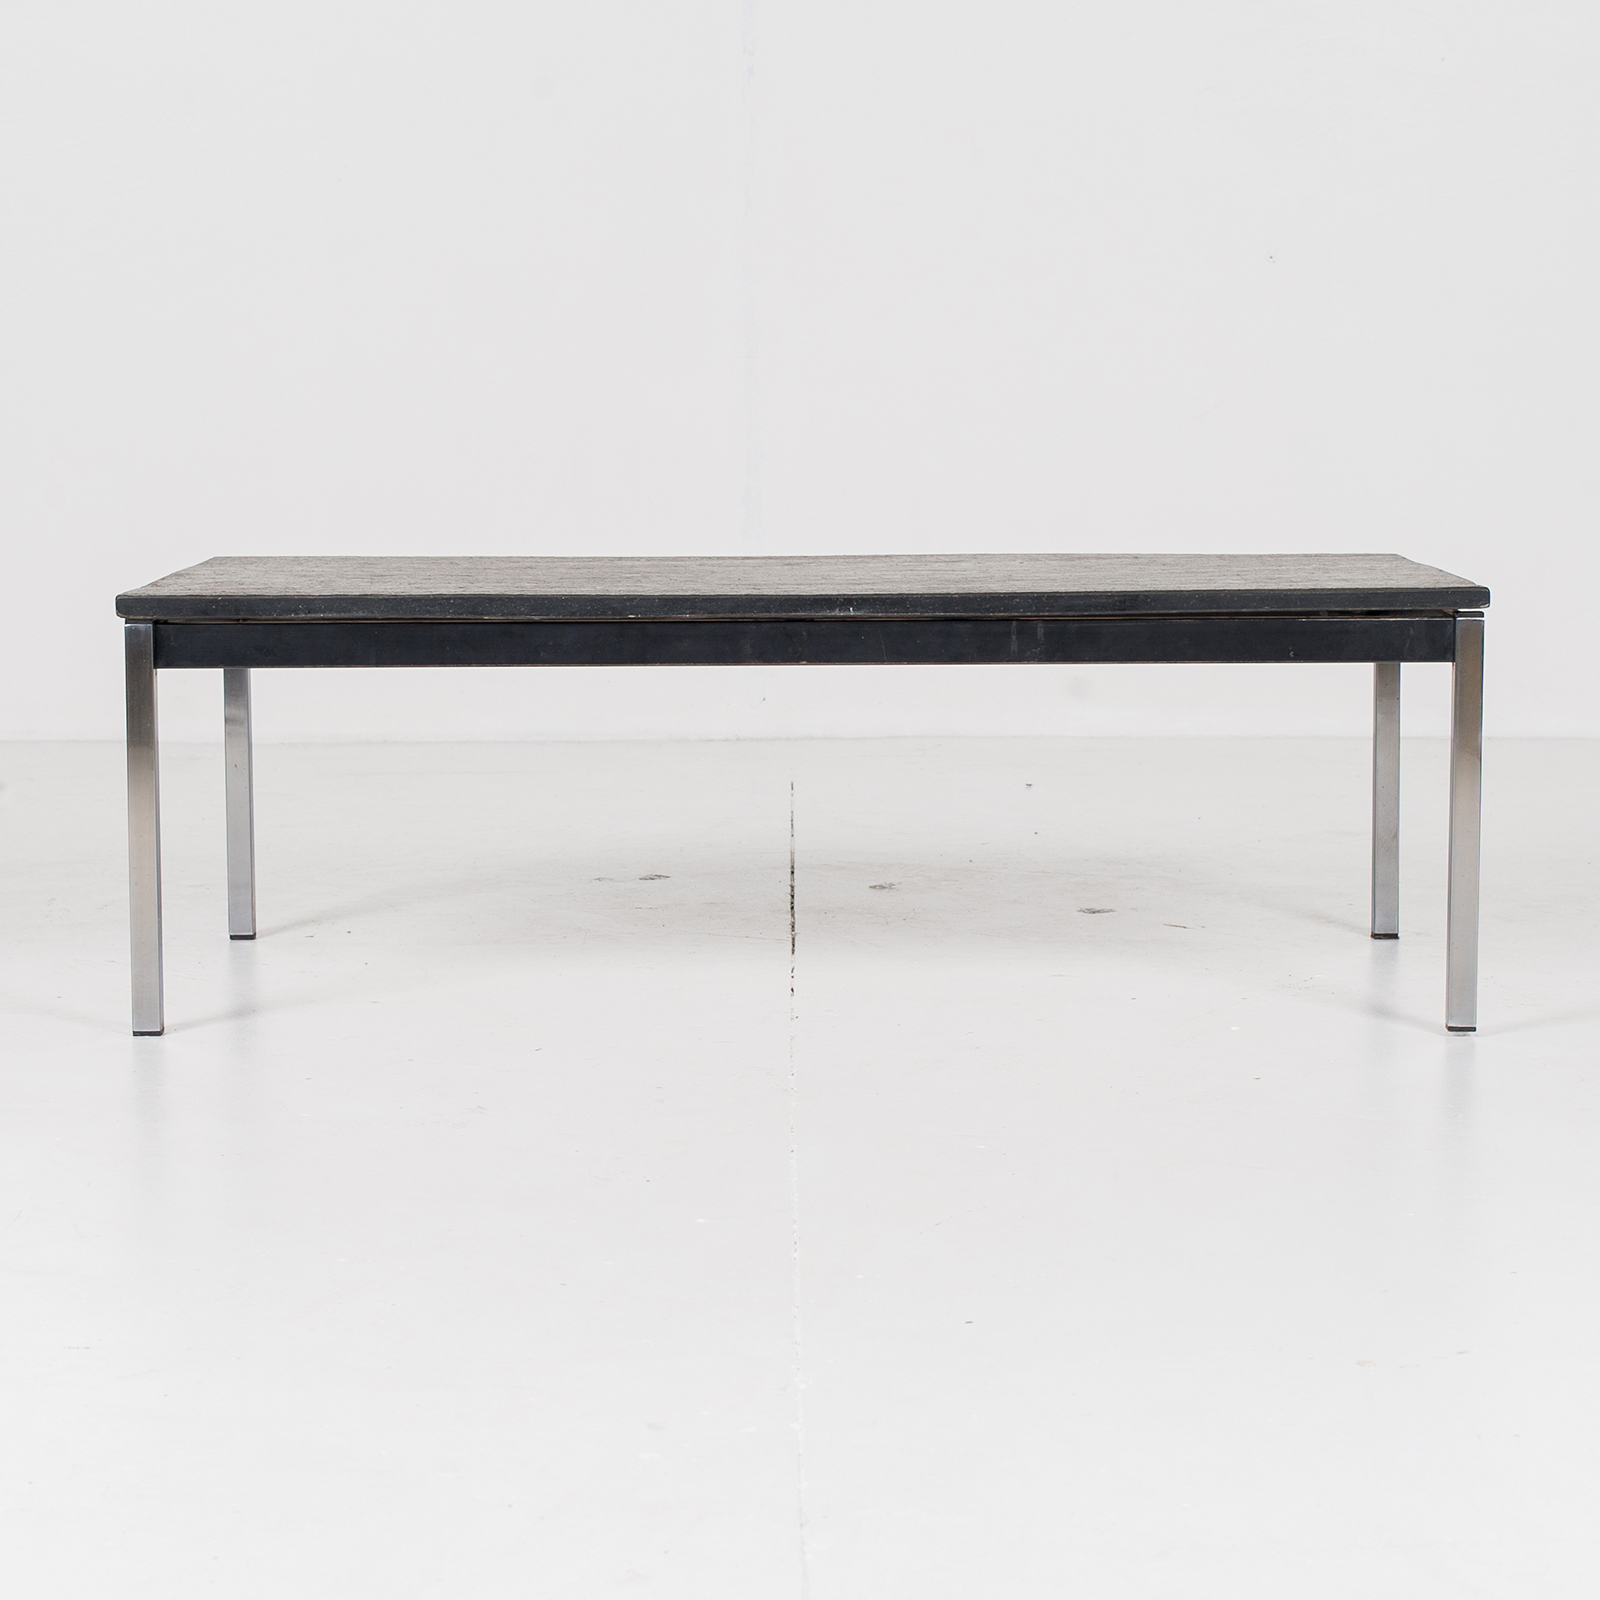 Coffee Table With Slate Top By Martin Visser, 1950s, The Netherlands 3054